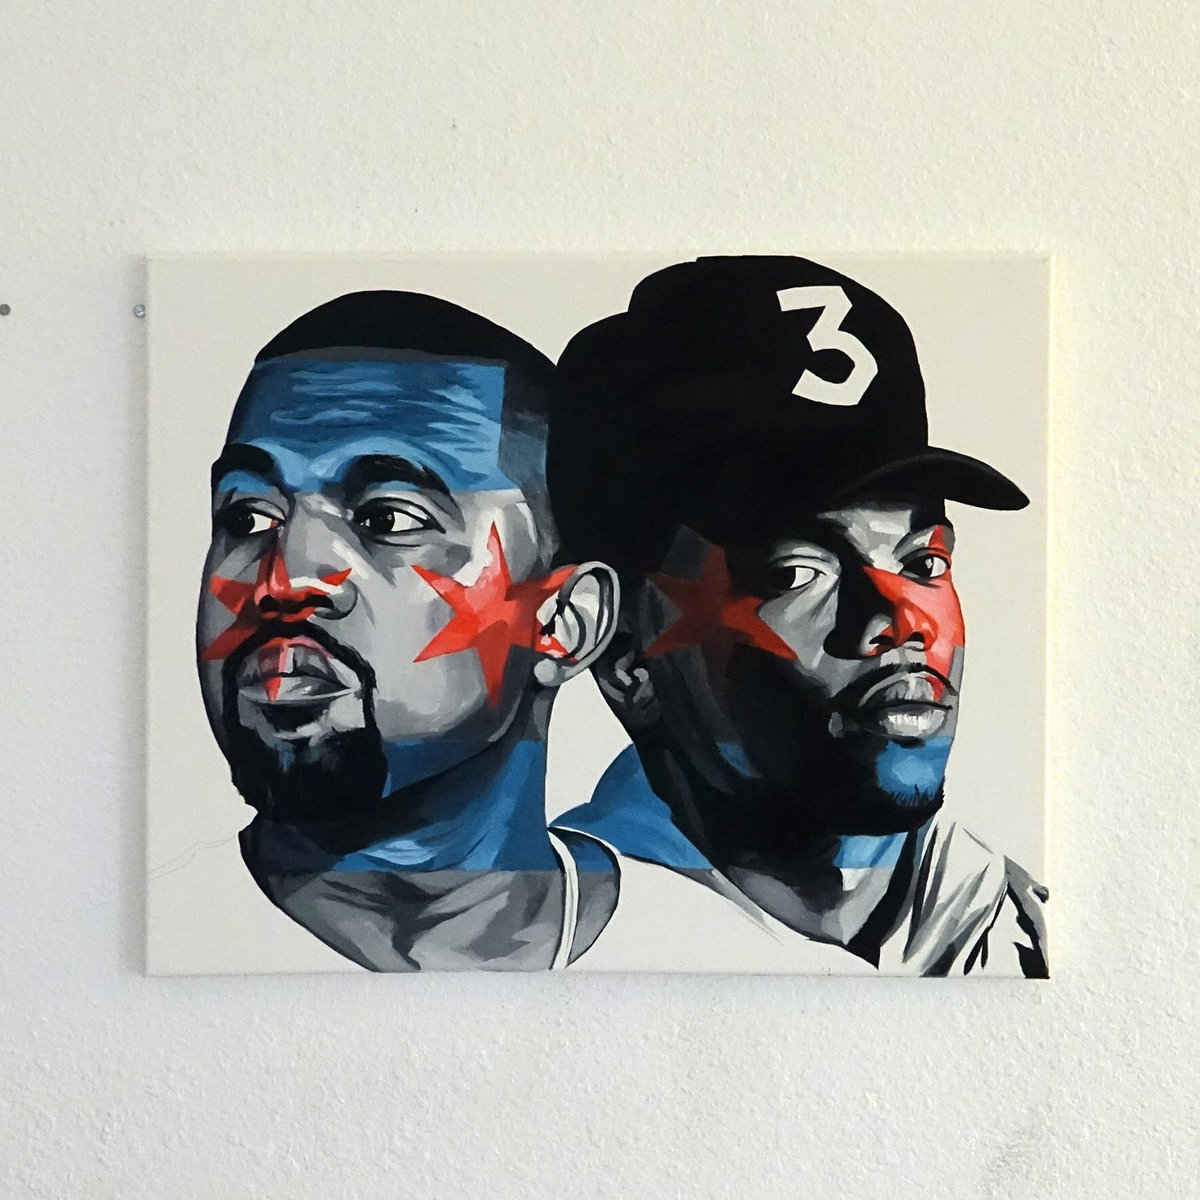 RT @Maha_Sattva: @kanyewest my painting commemorating your and Chances contributions to Chicago https://t.co/00rMyfQYSY